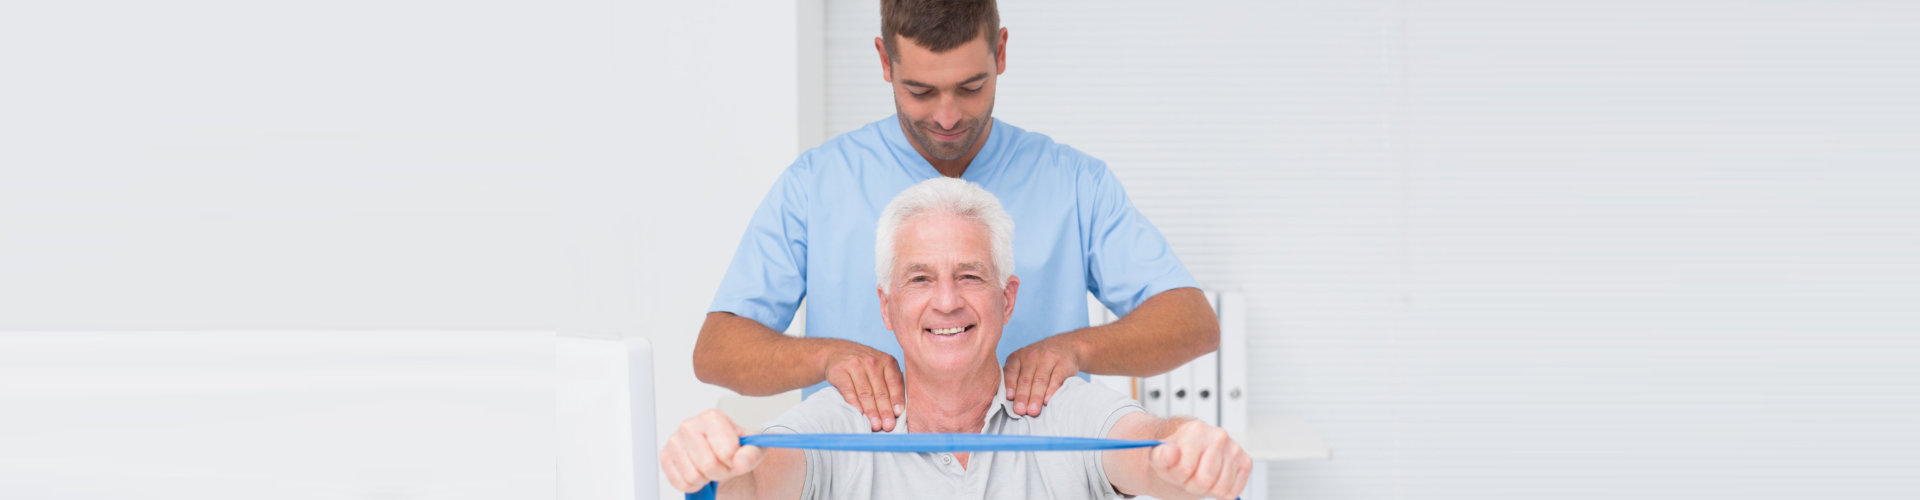 male occupational therapist assisting senior man in exercising with resistance band